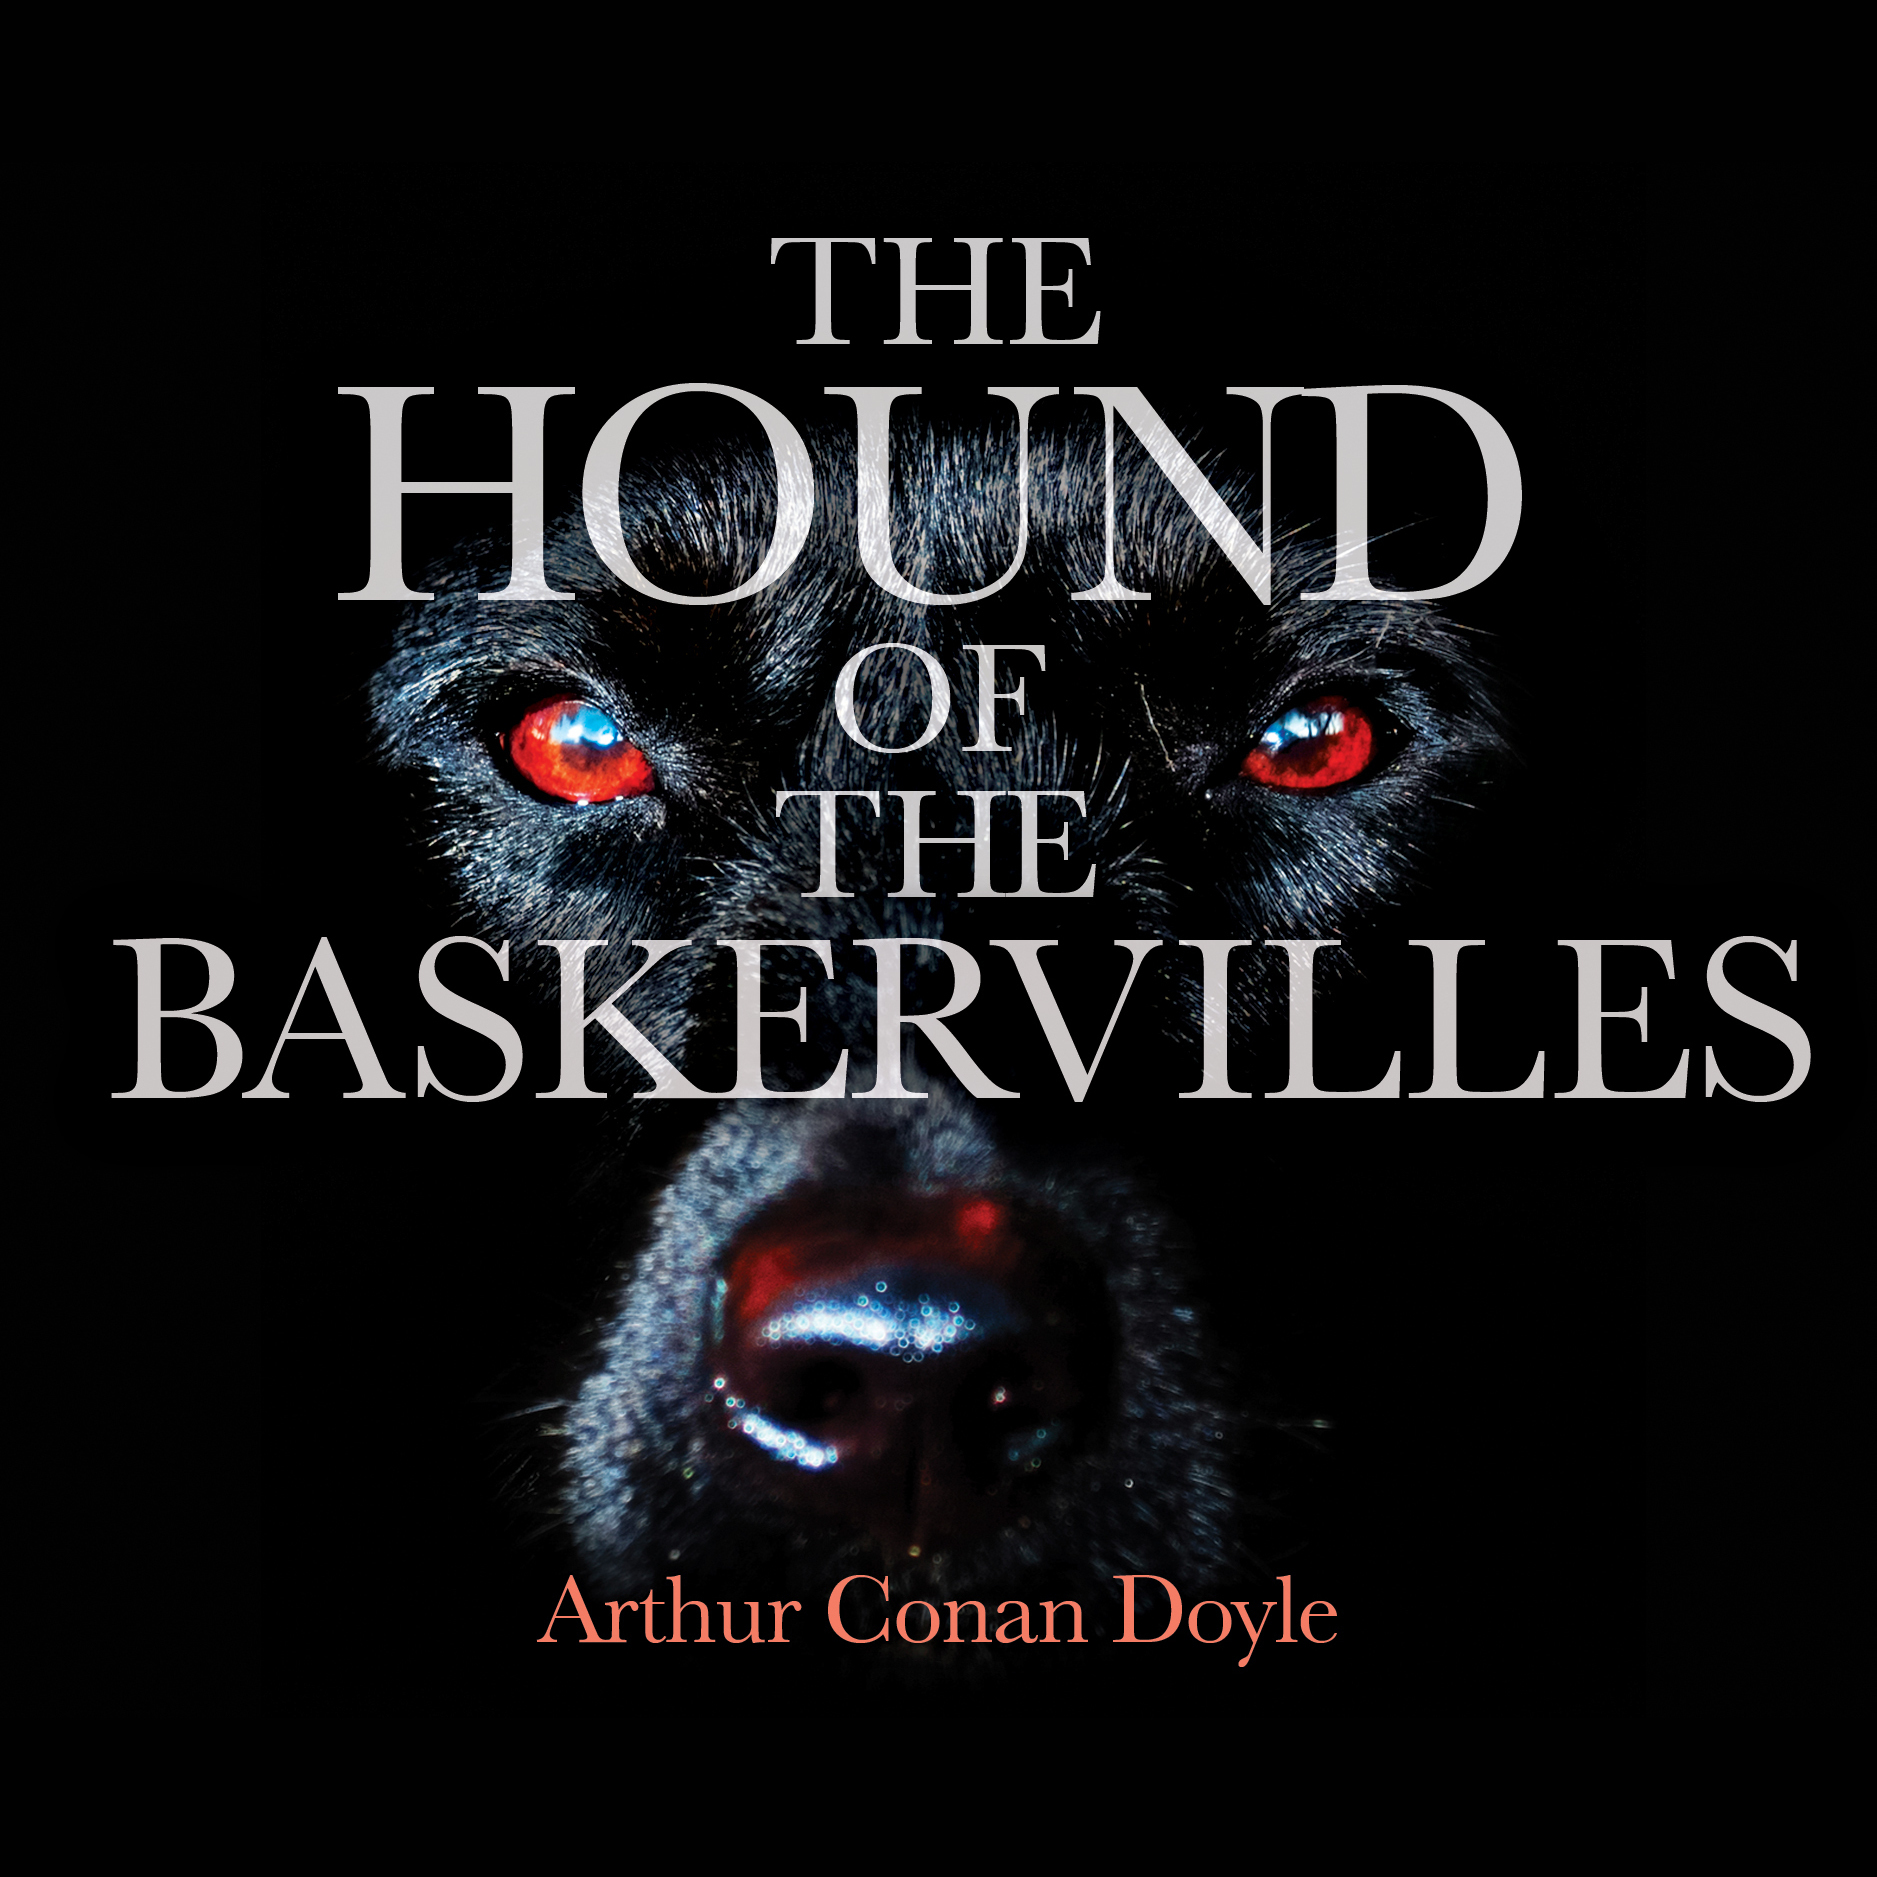 book the hound of the baskervilles Free download of the hound of the baskervilles by sir arthur conan doyle available in pdf, epub and kindle read, write reviews and more.